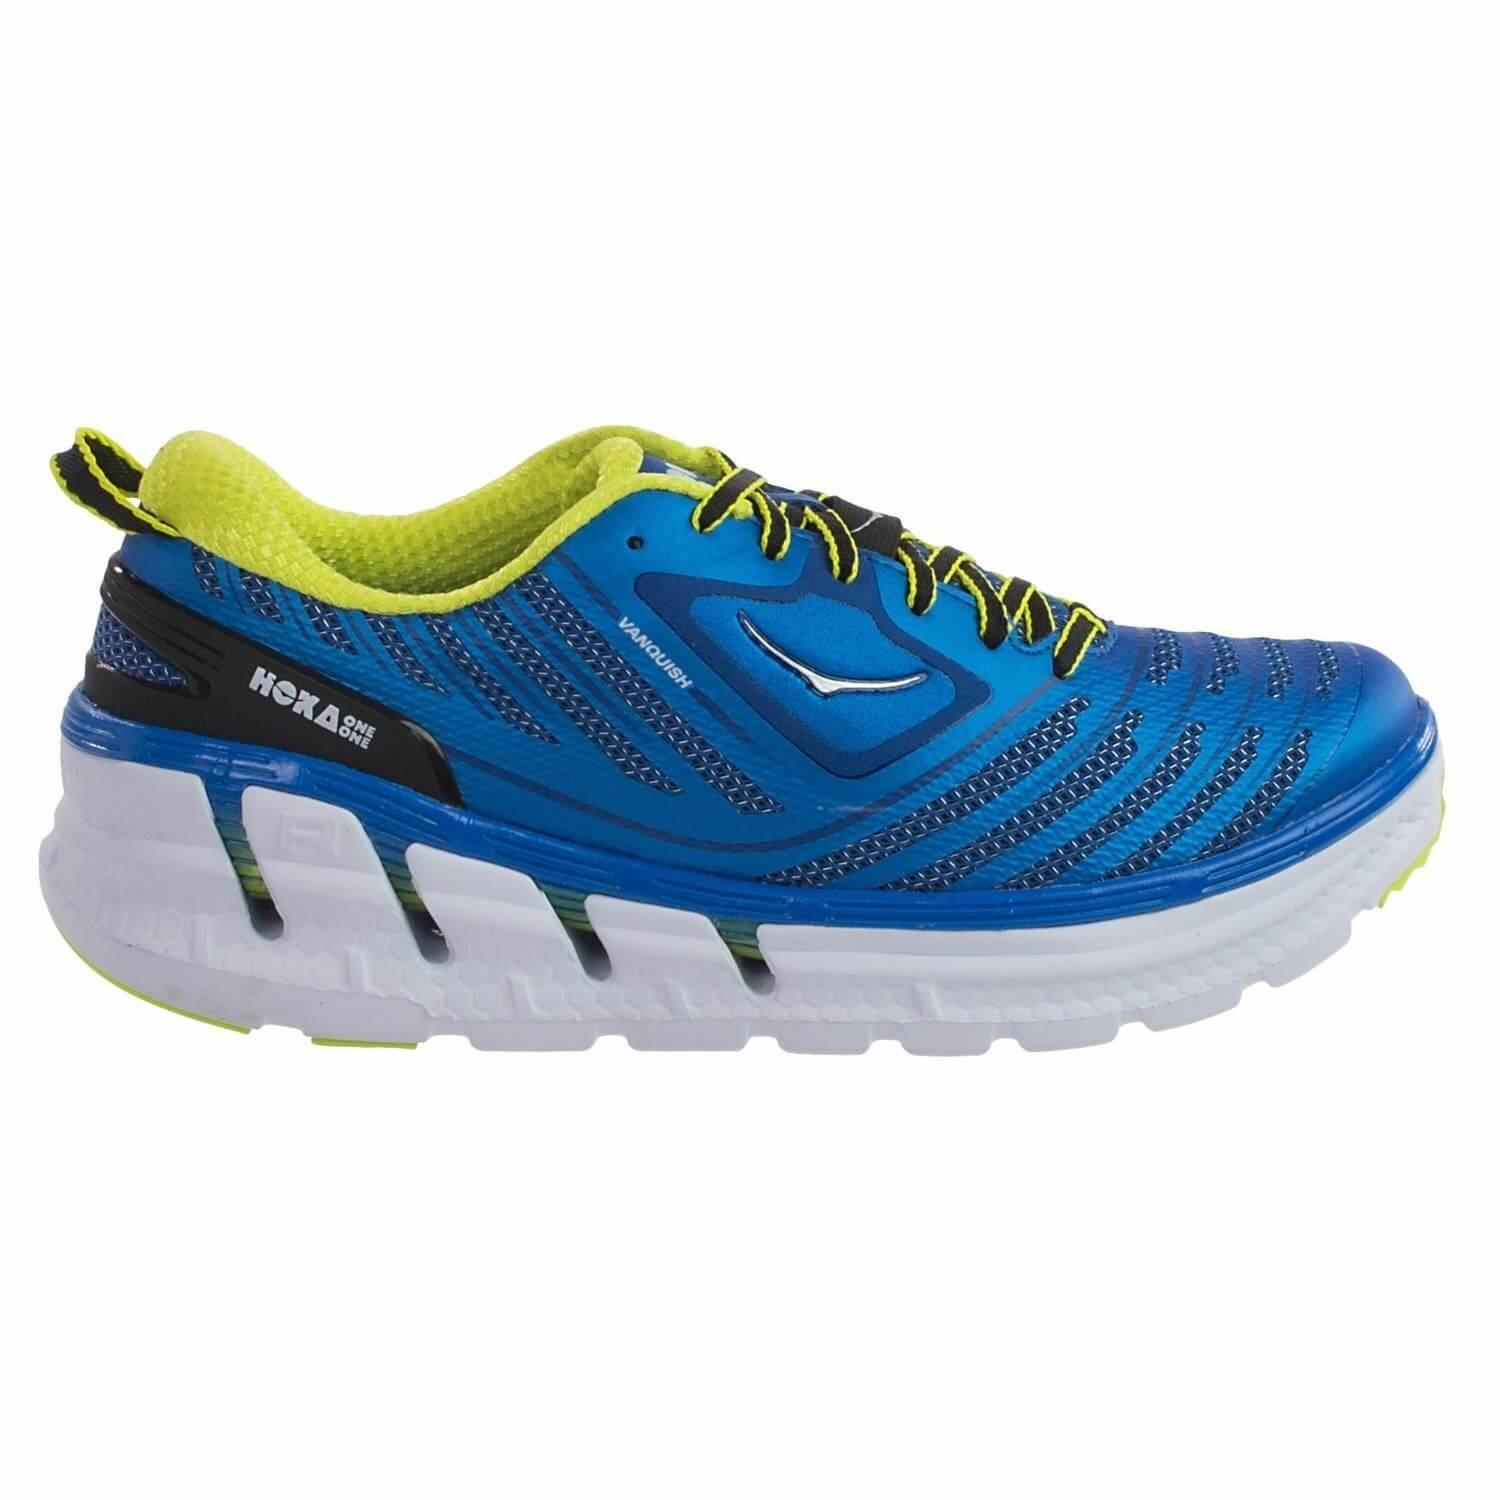 Hoka One One Vanquish left to right